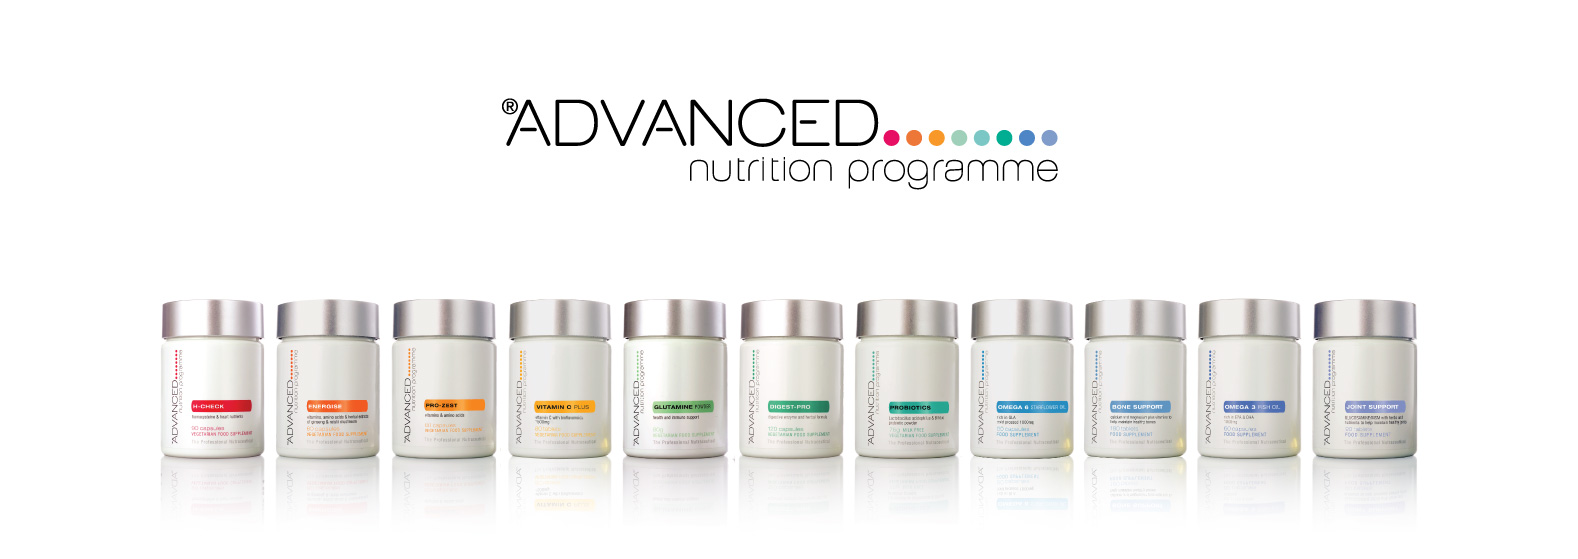 ANP logo & vitamin supplement pots